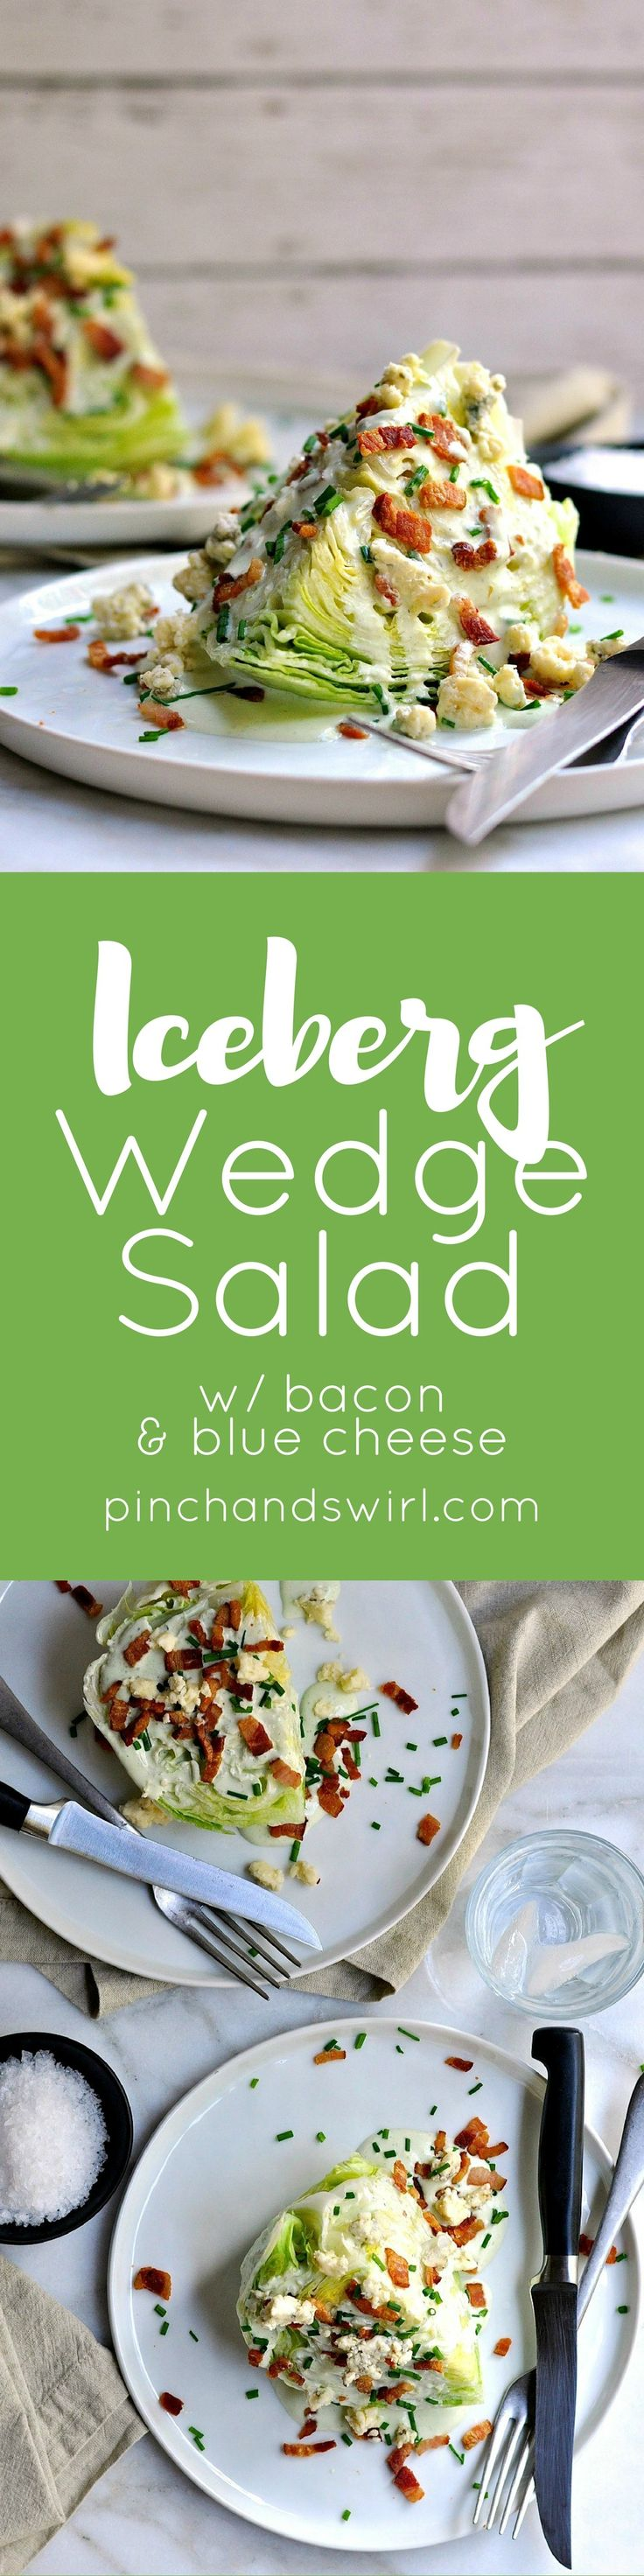 The Iceberg Wedge Salad is a classic American steakhouse salad that is as easy as it is delicious! Crunchy iceberg lettuce, crispy bacon and the quintessential wedge salad dressing: creamy-tangy blue cheese. Make these for a couple of a crowd in minutes.